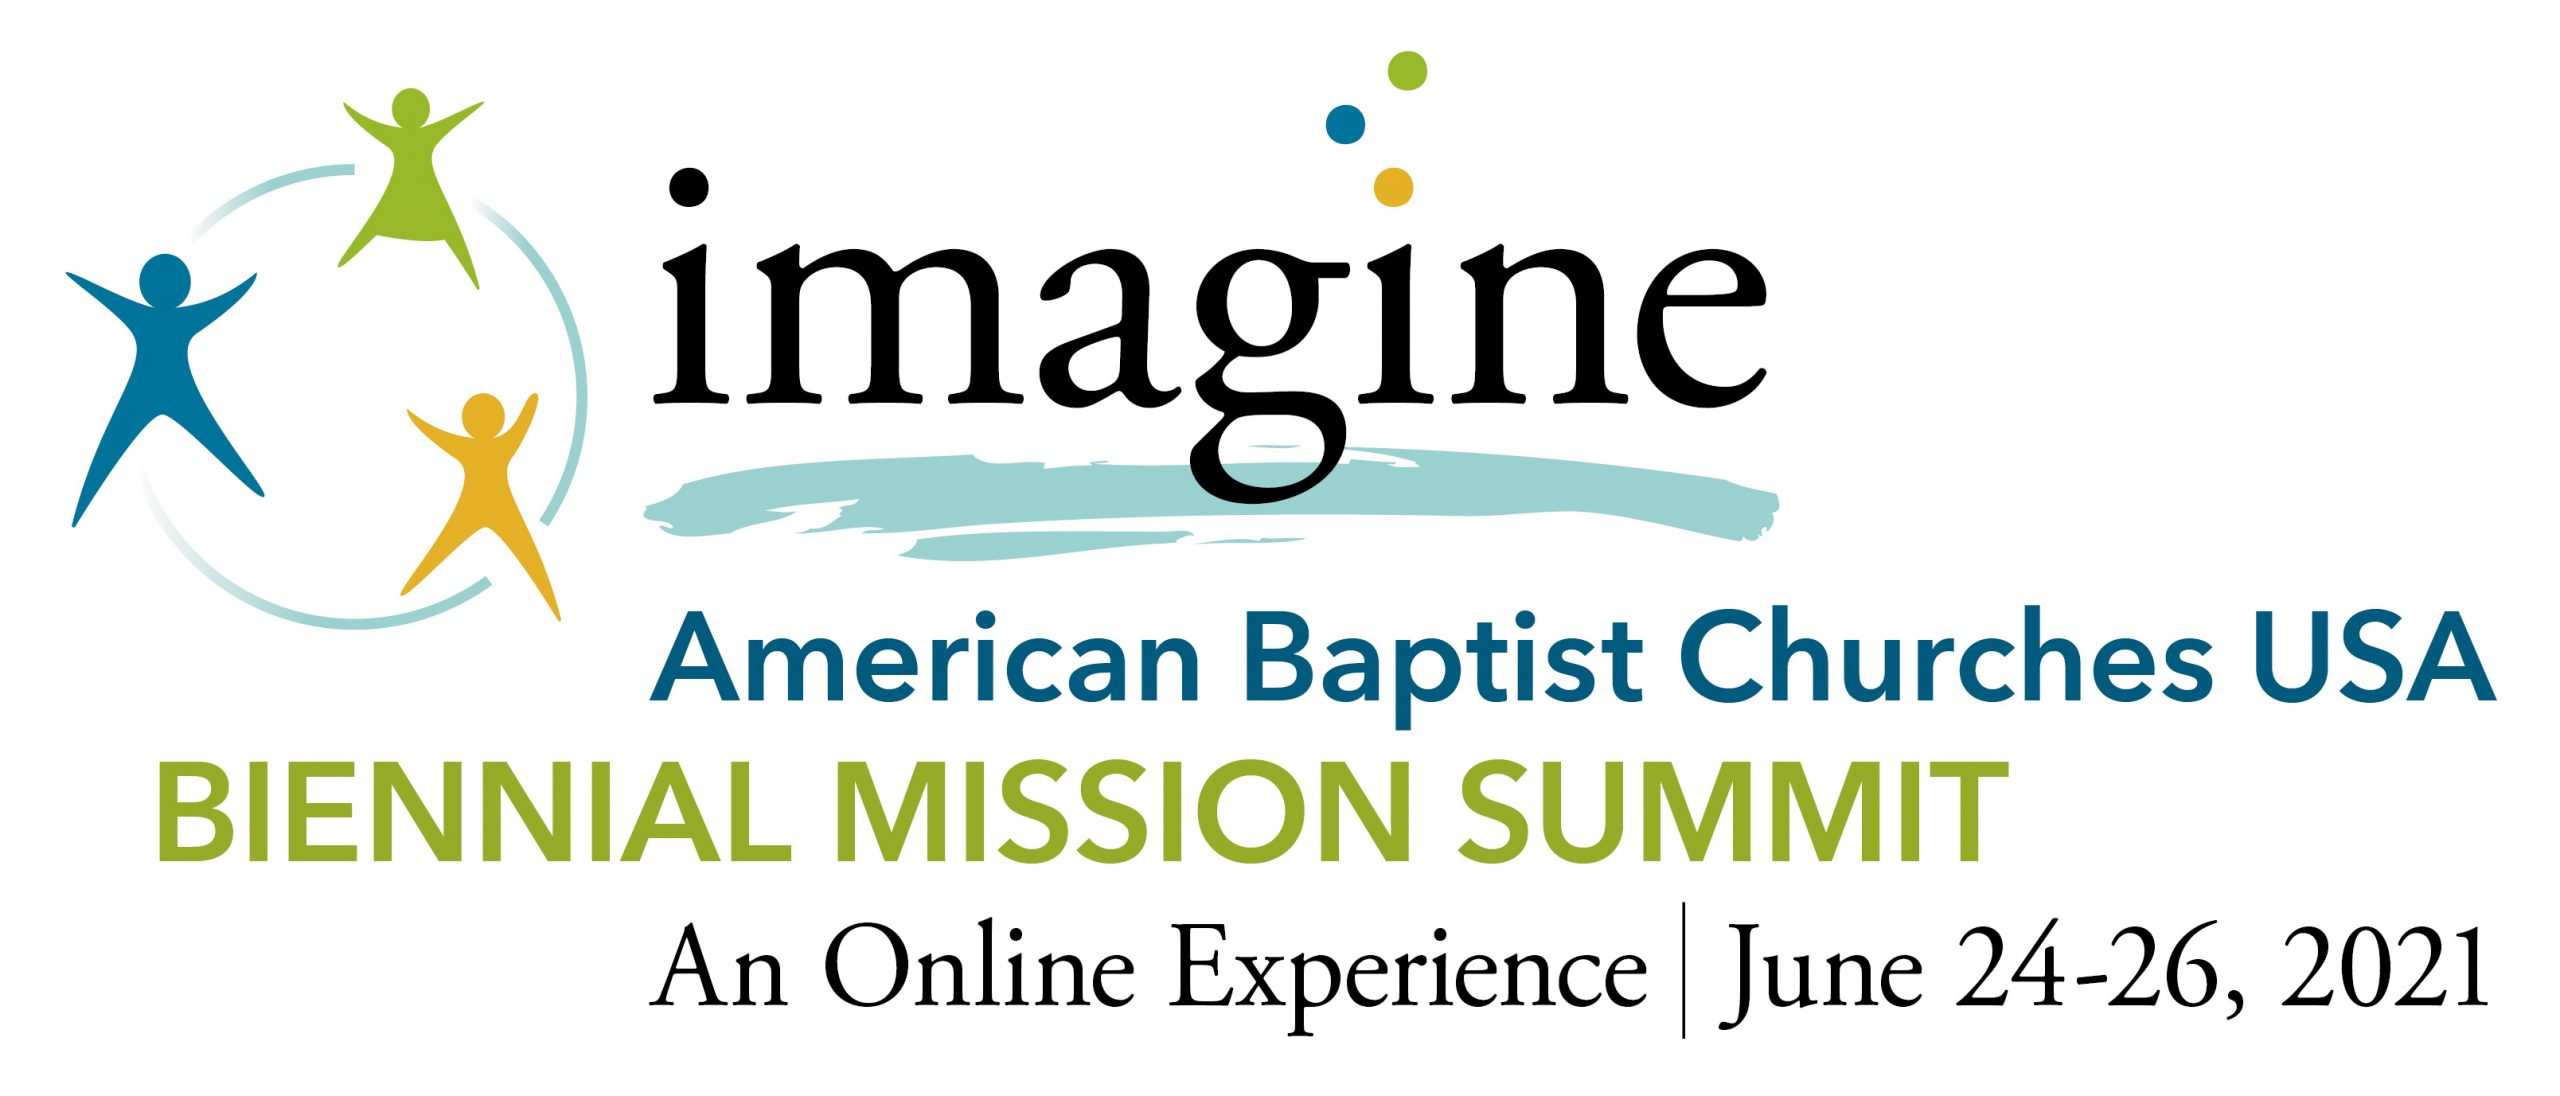 Exhibitor and Sponsor Prospectus - 2021 Biennial Mission Summit